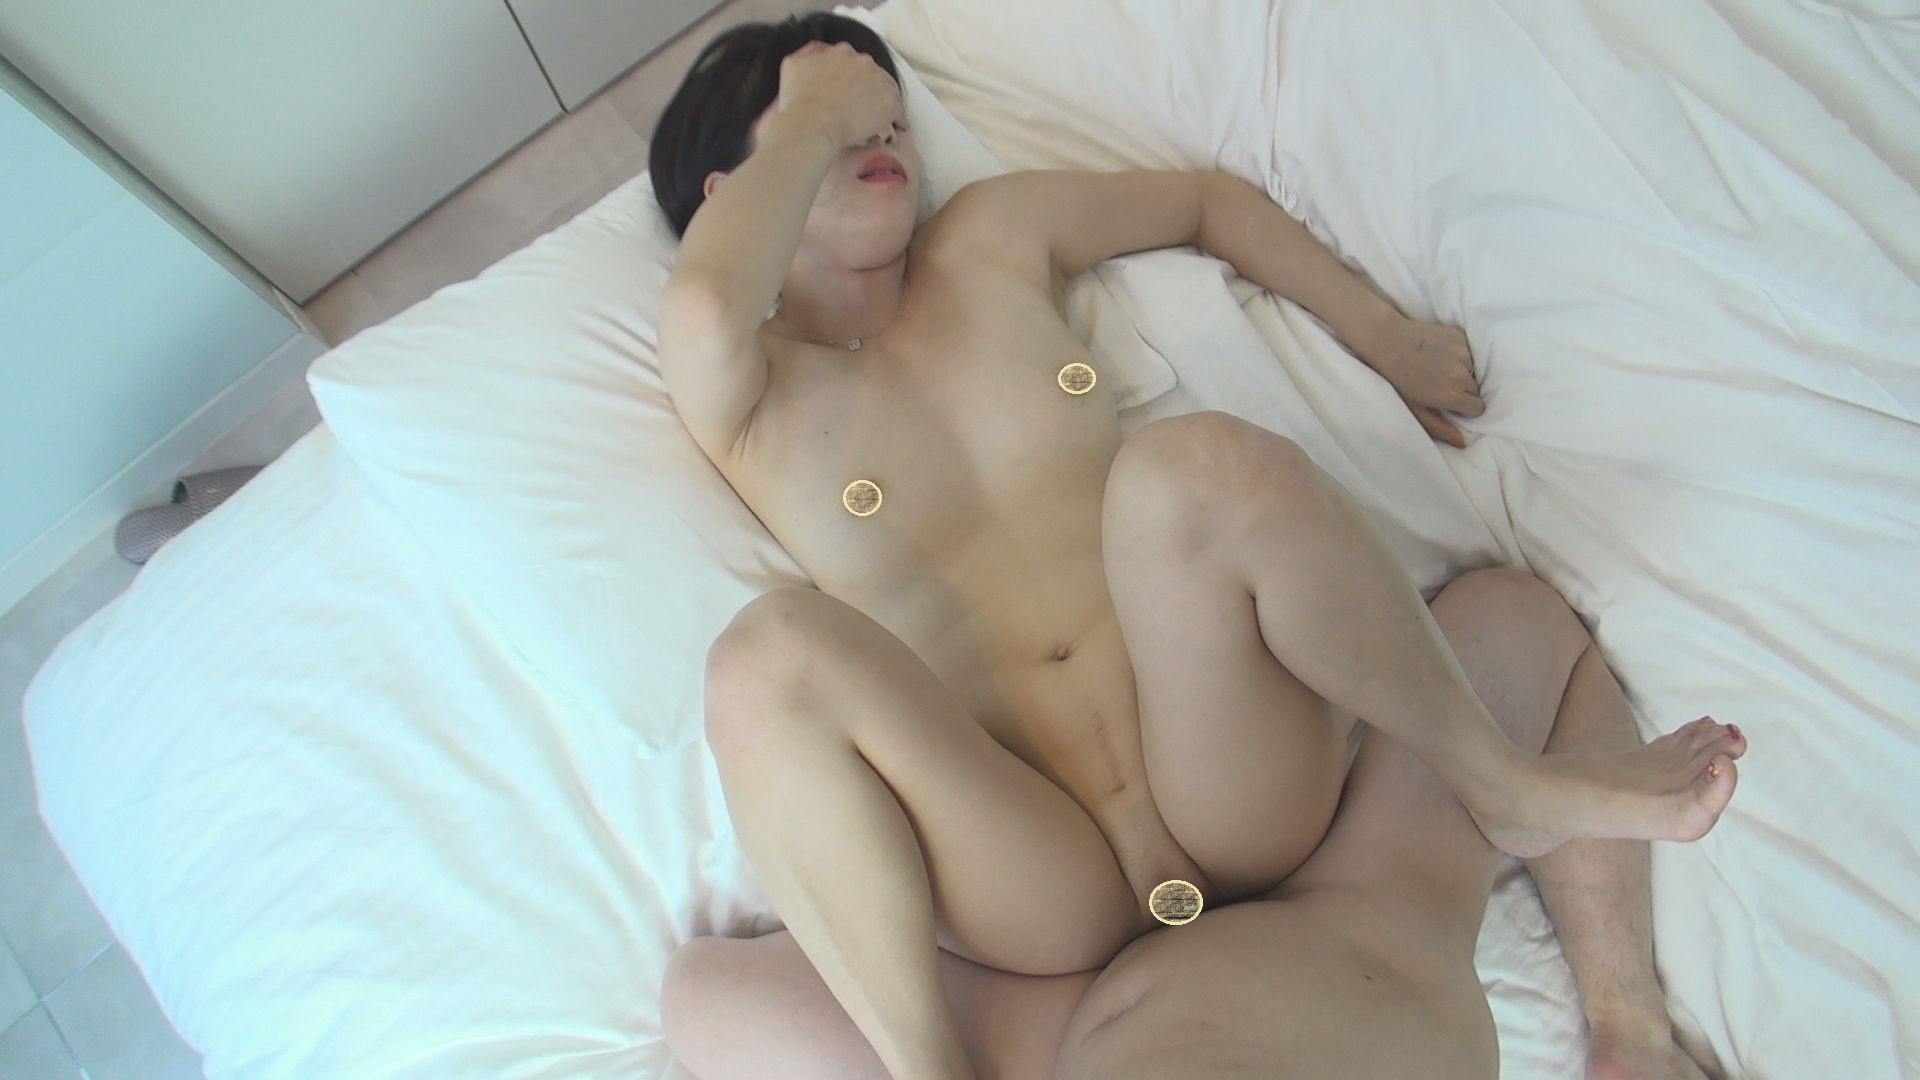 FC2-PPV 1452086 First Shot Two Consecutive Shots Vaginal Cum Shot To A 46-year-old Married Woman On The 25th Anniversary Of Marriage Quot You Have An Affair For The First Time In 25 Years Since You Got Married Forgive Me Quot Personal Video Recording